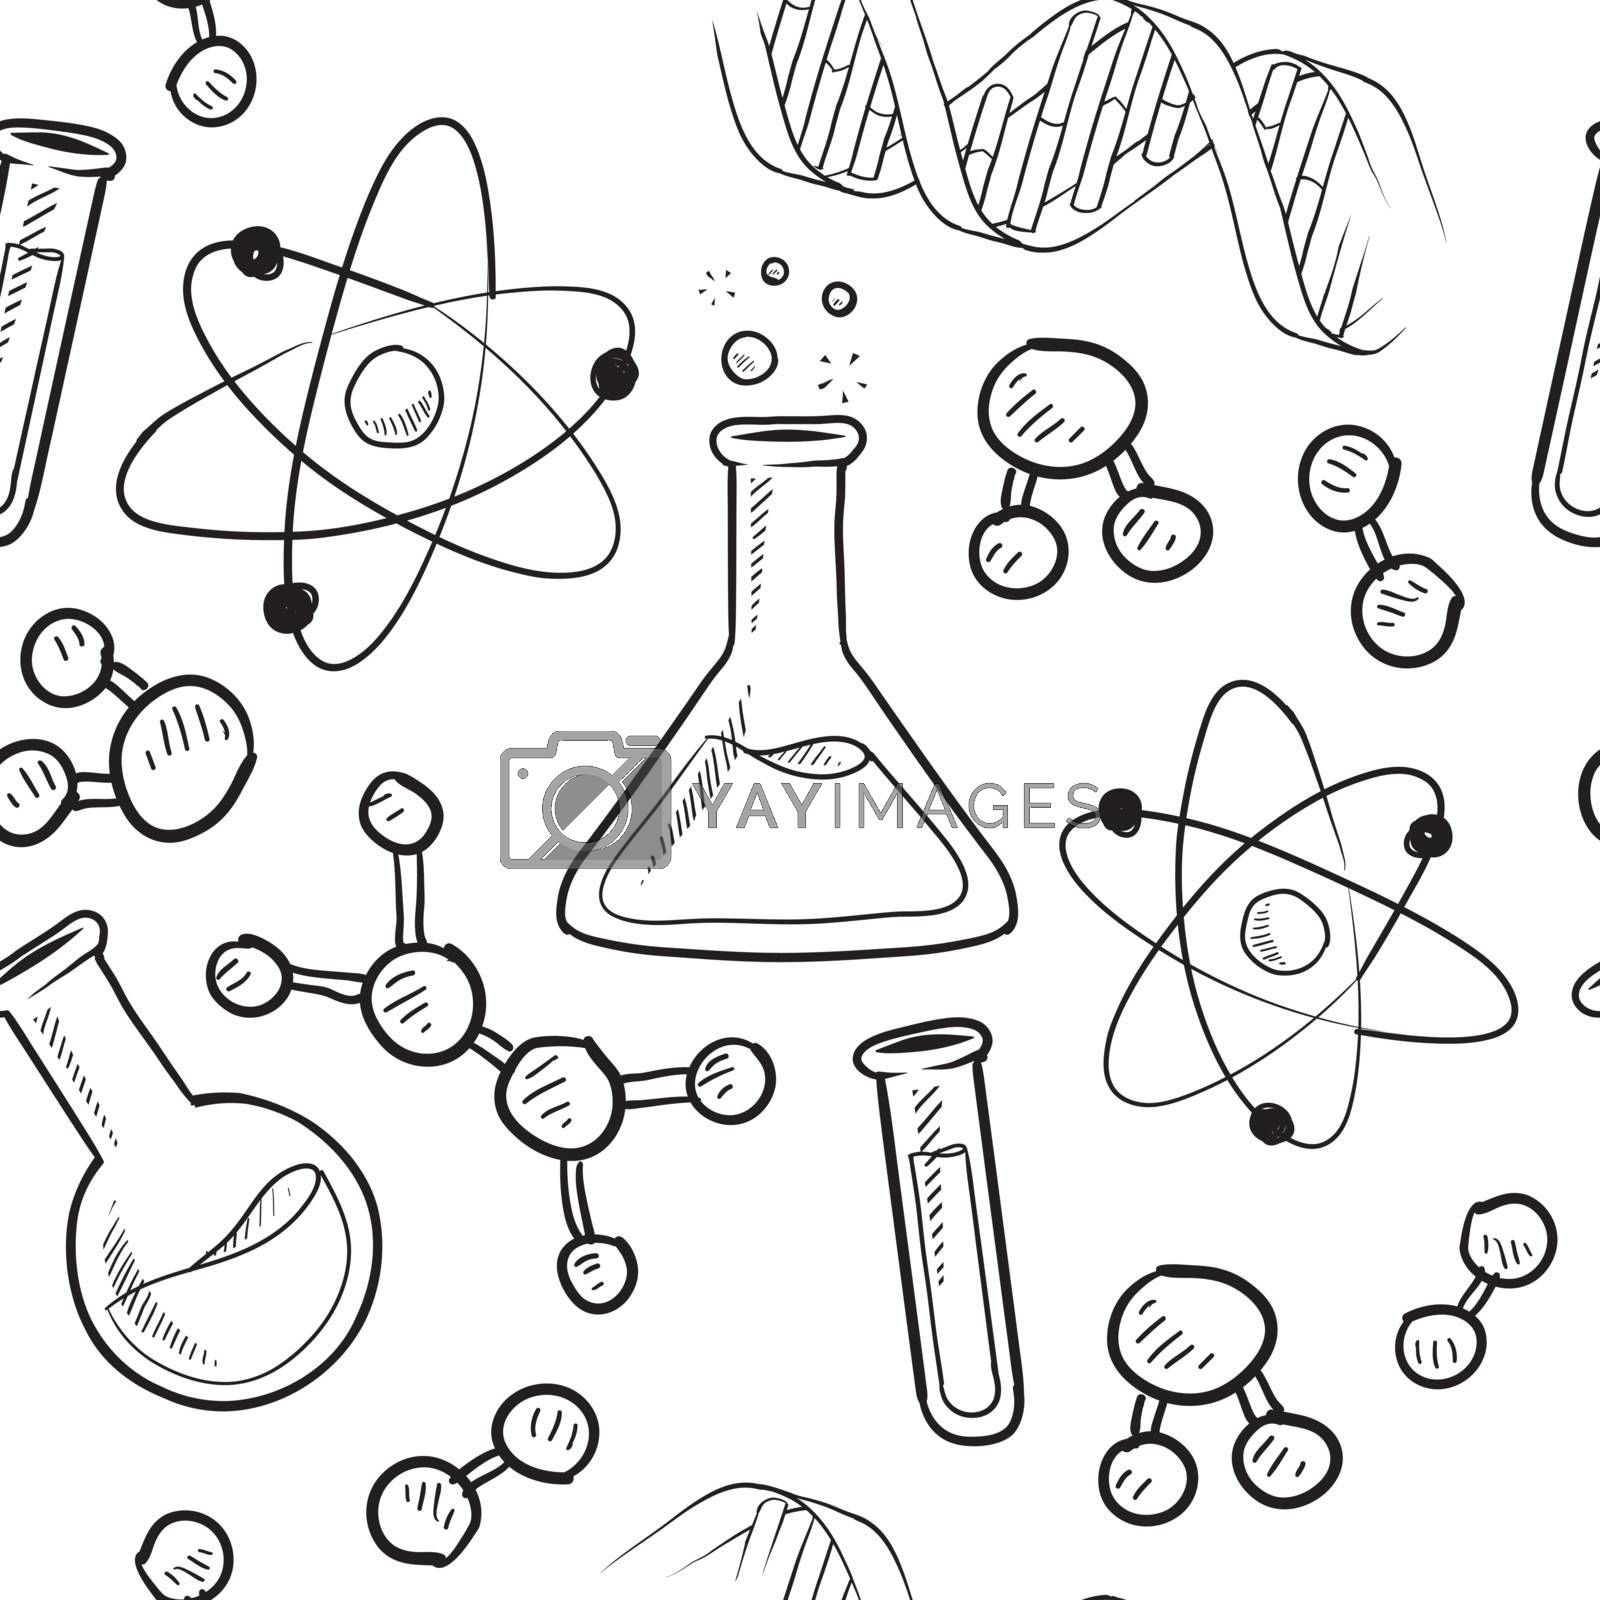 Doodle style seamless science or laborator background illustration in vector format